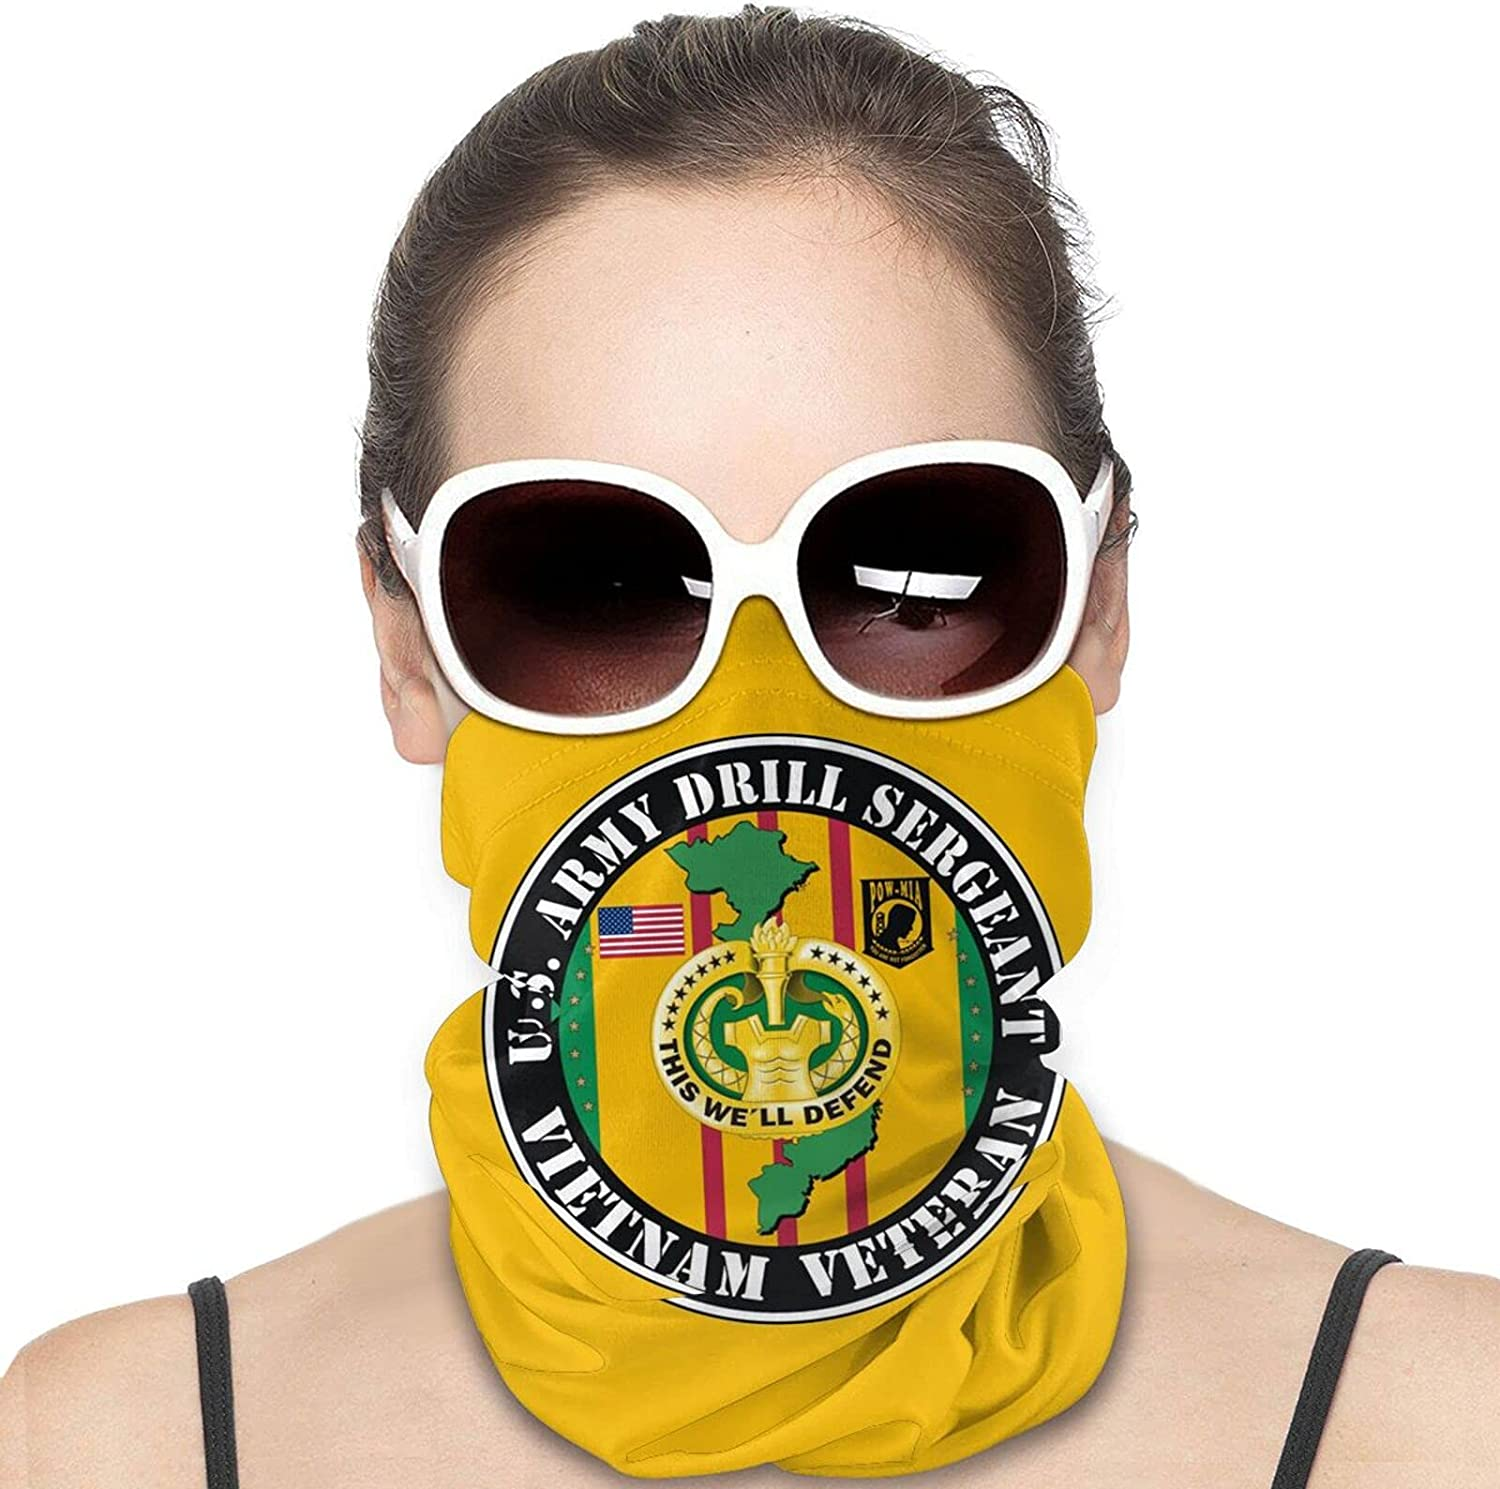 U.S. Army Drill Sergeant Vietnam Veteran Round Neck Gaiter Bandnas Face Cover Uv Protection Prevent bask in Ice Scarf Headbands Perfect for Motorcycle Cycling Running Festival Raves Outdoors